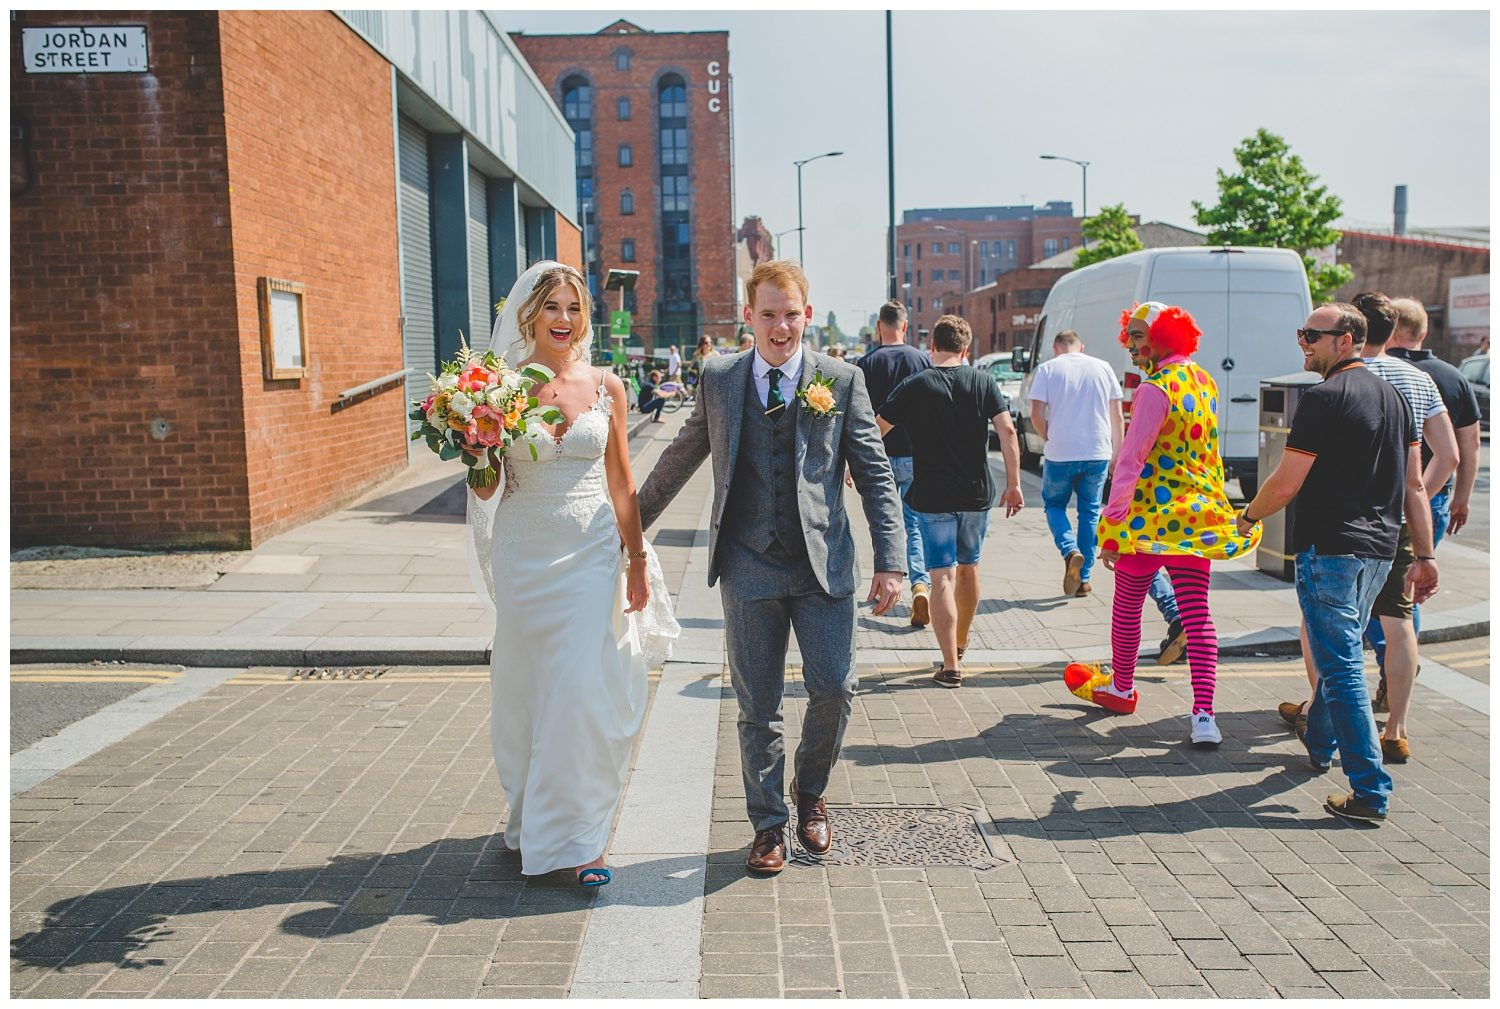 Baltic Triangle Liverpool wedding